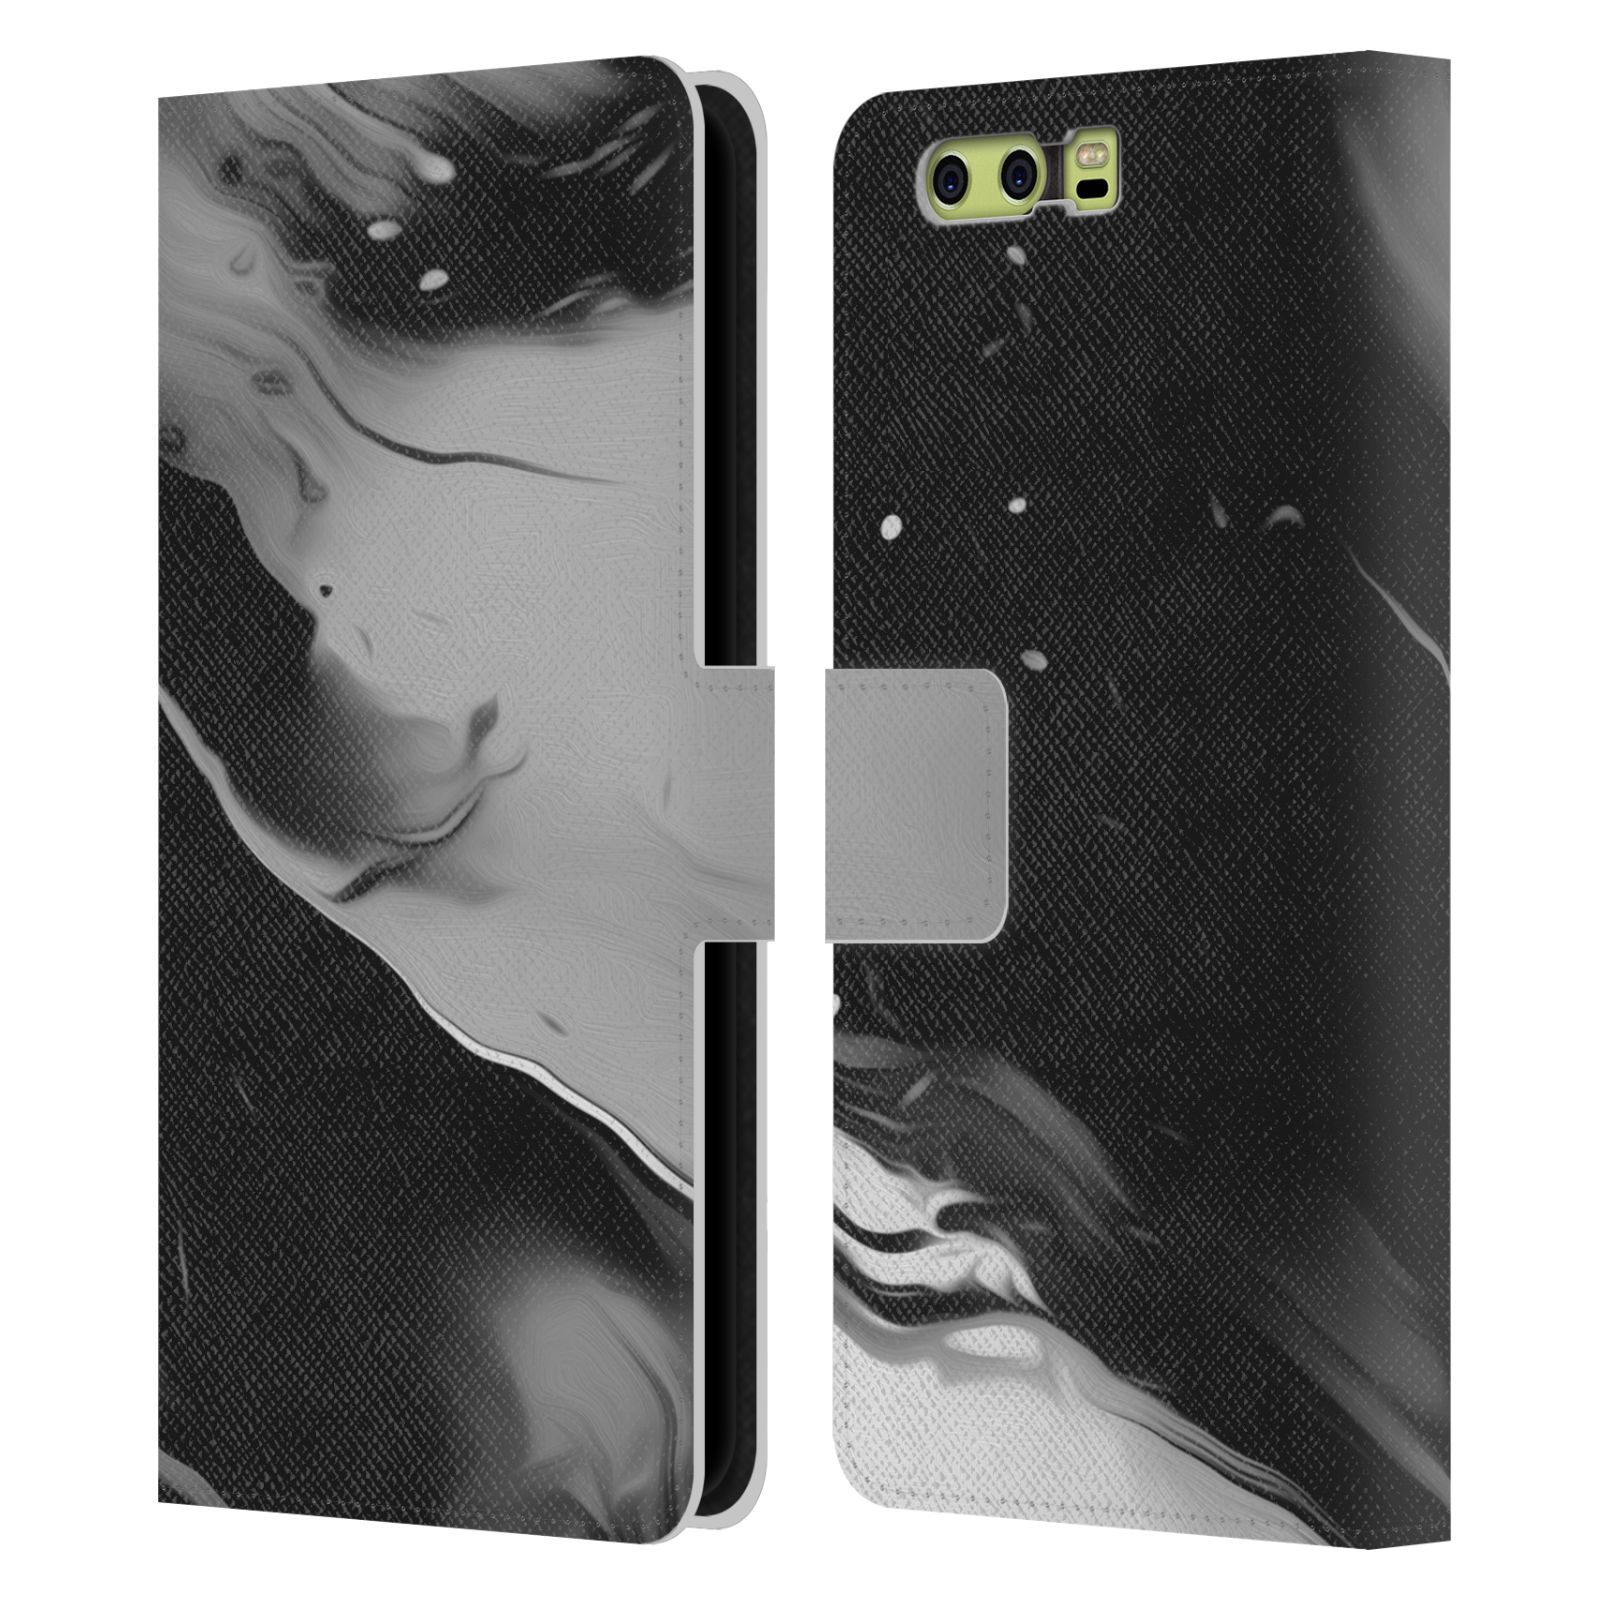 OFFICIAL-MALAVIDA-ABSTRACT-MONOCHROMATIC-LEATHER-BOOK-CASE-FOR-HUAWEI-PHONES